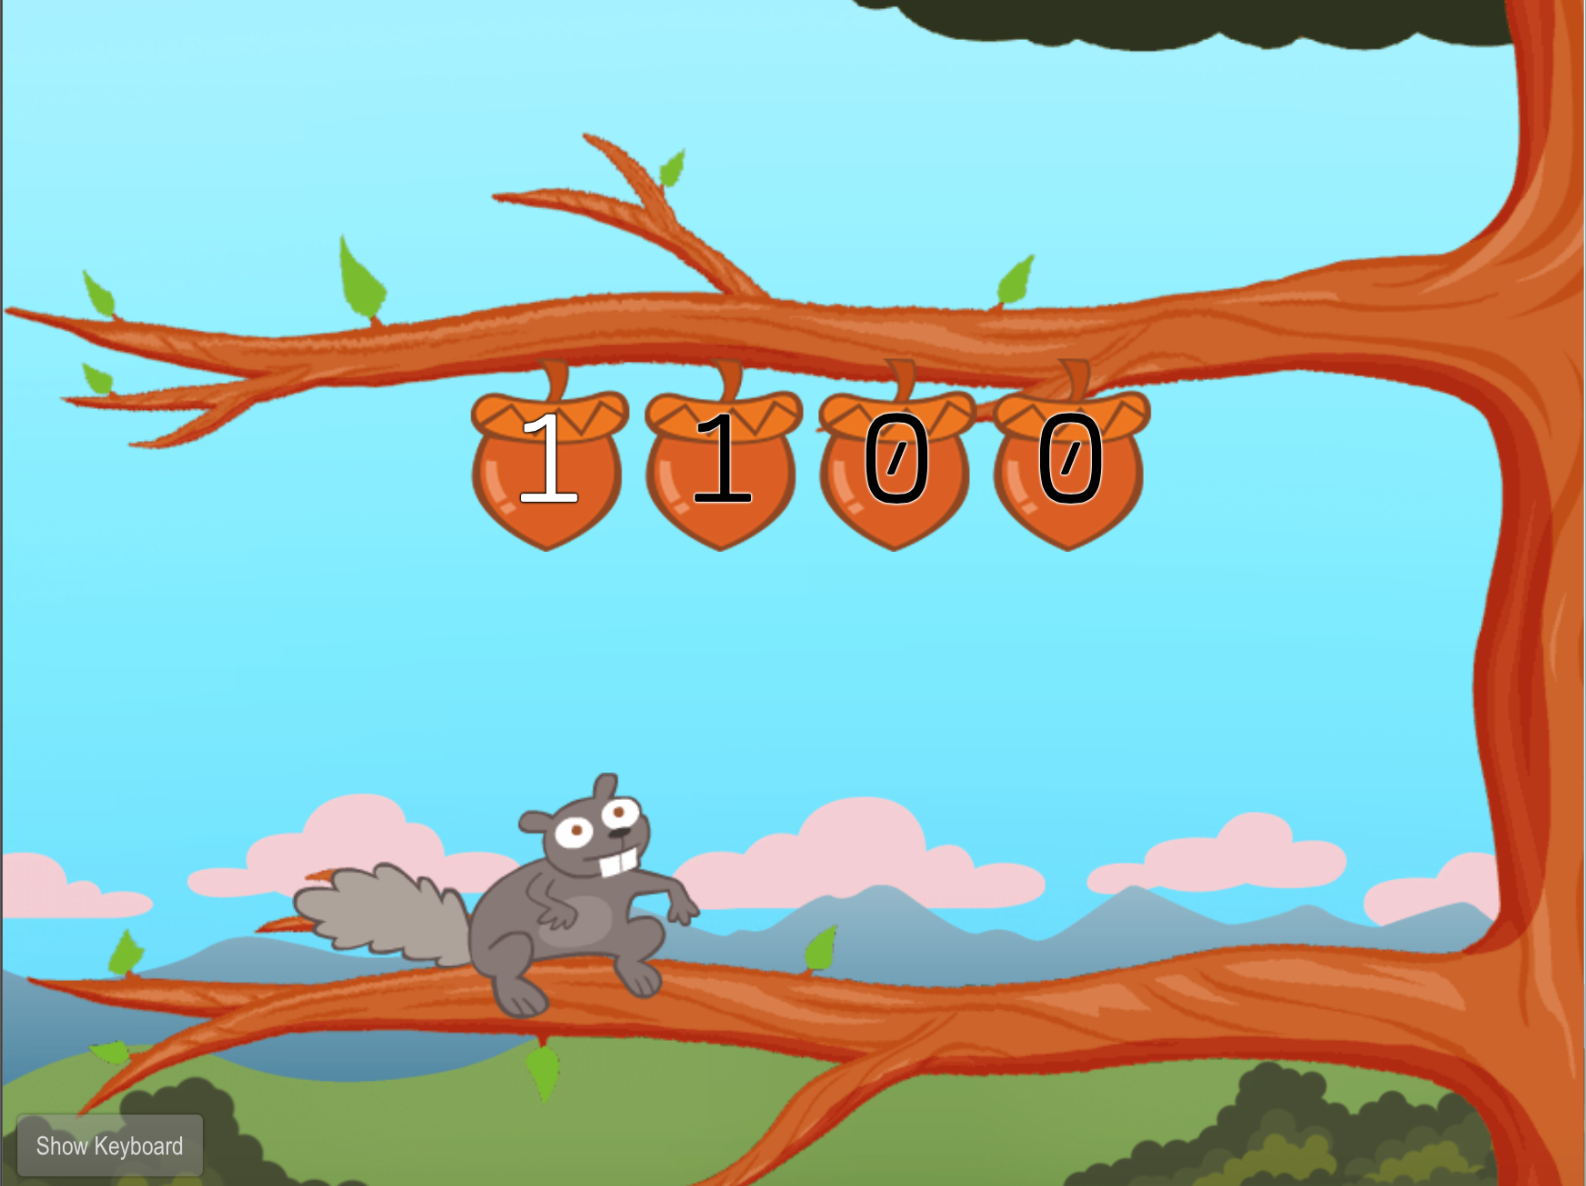 Typing Numbers: 1,2,9, and 0 with Squirrel | Game | Education.com